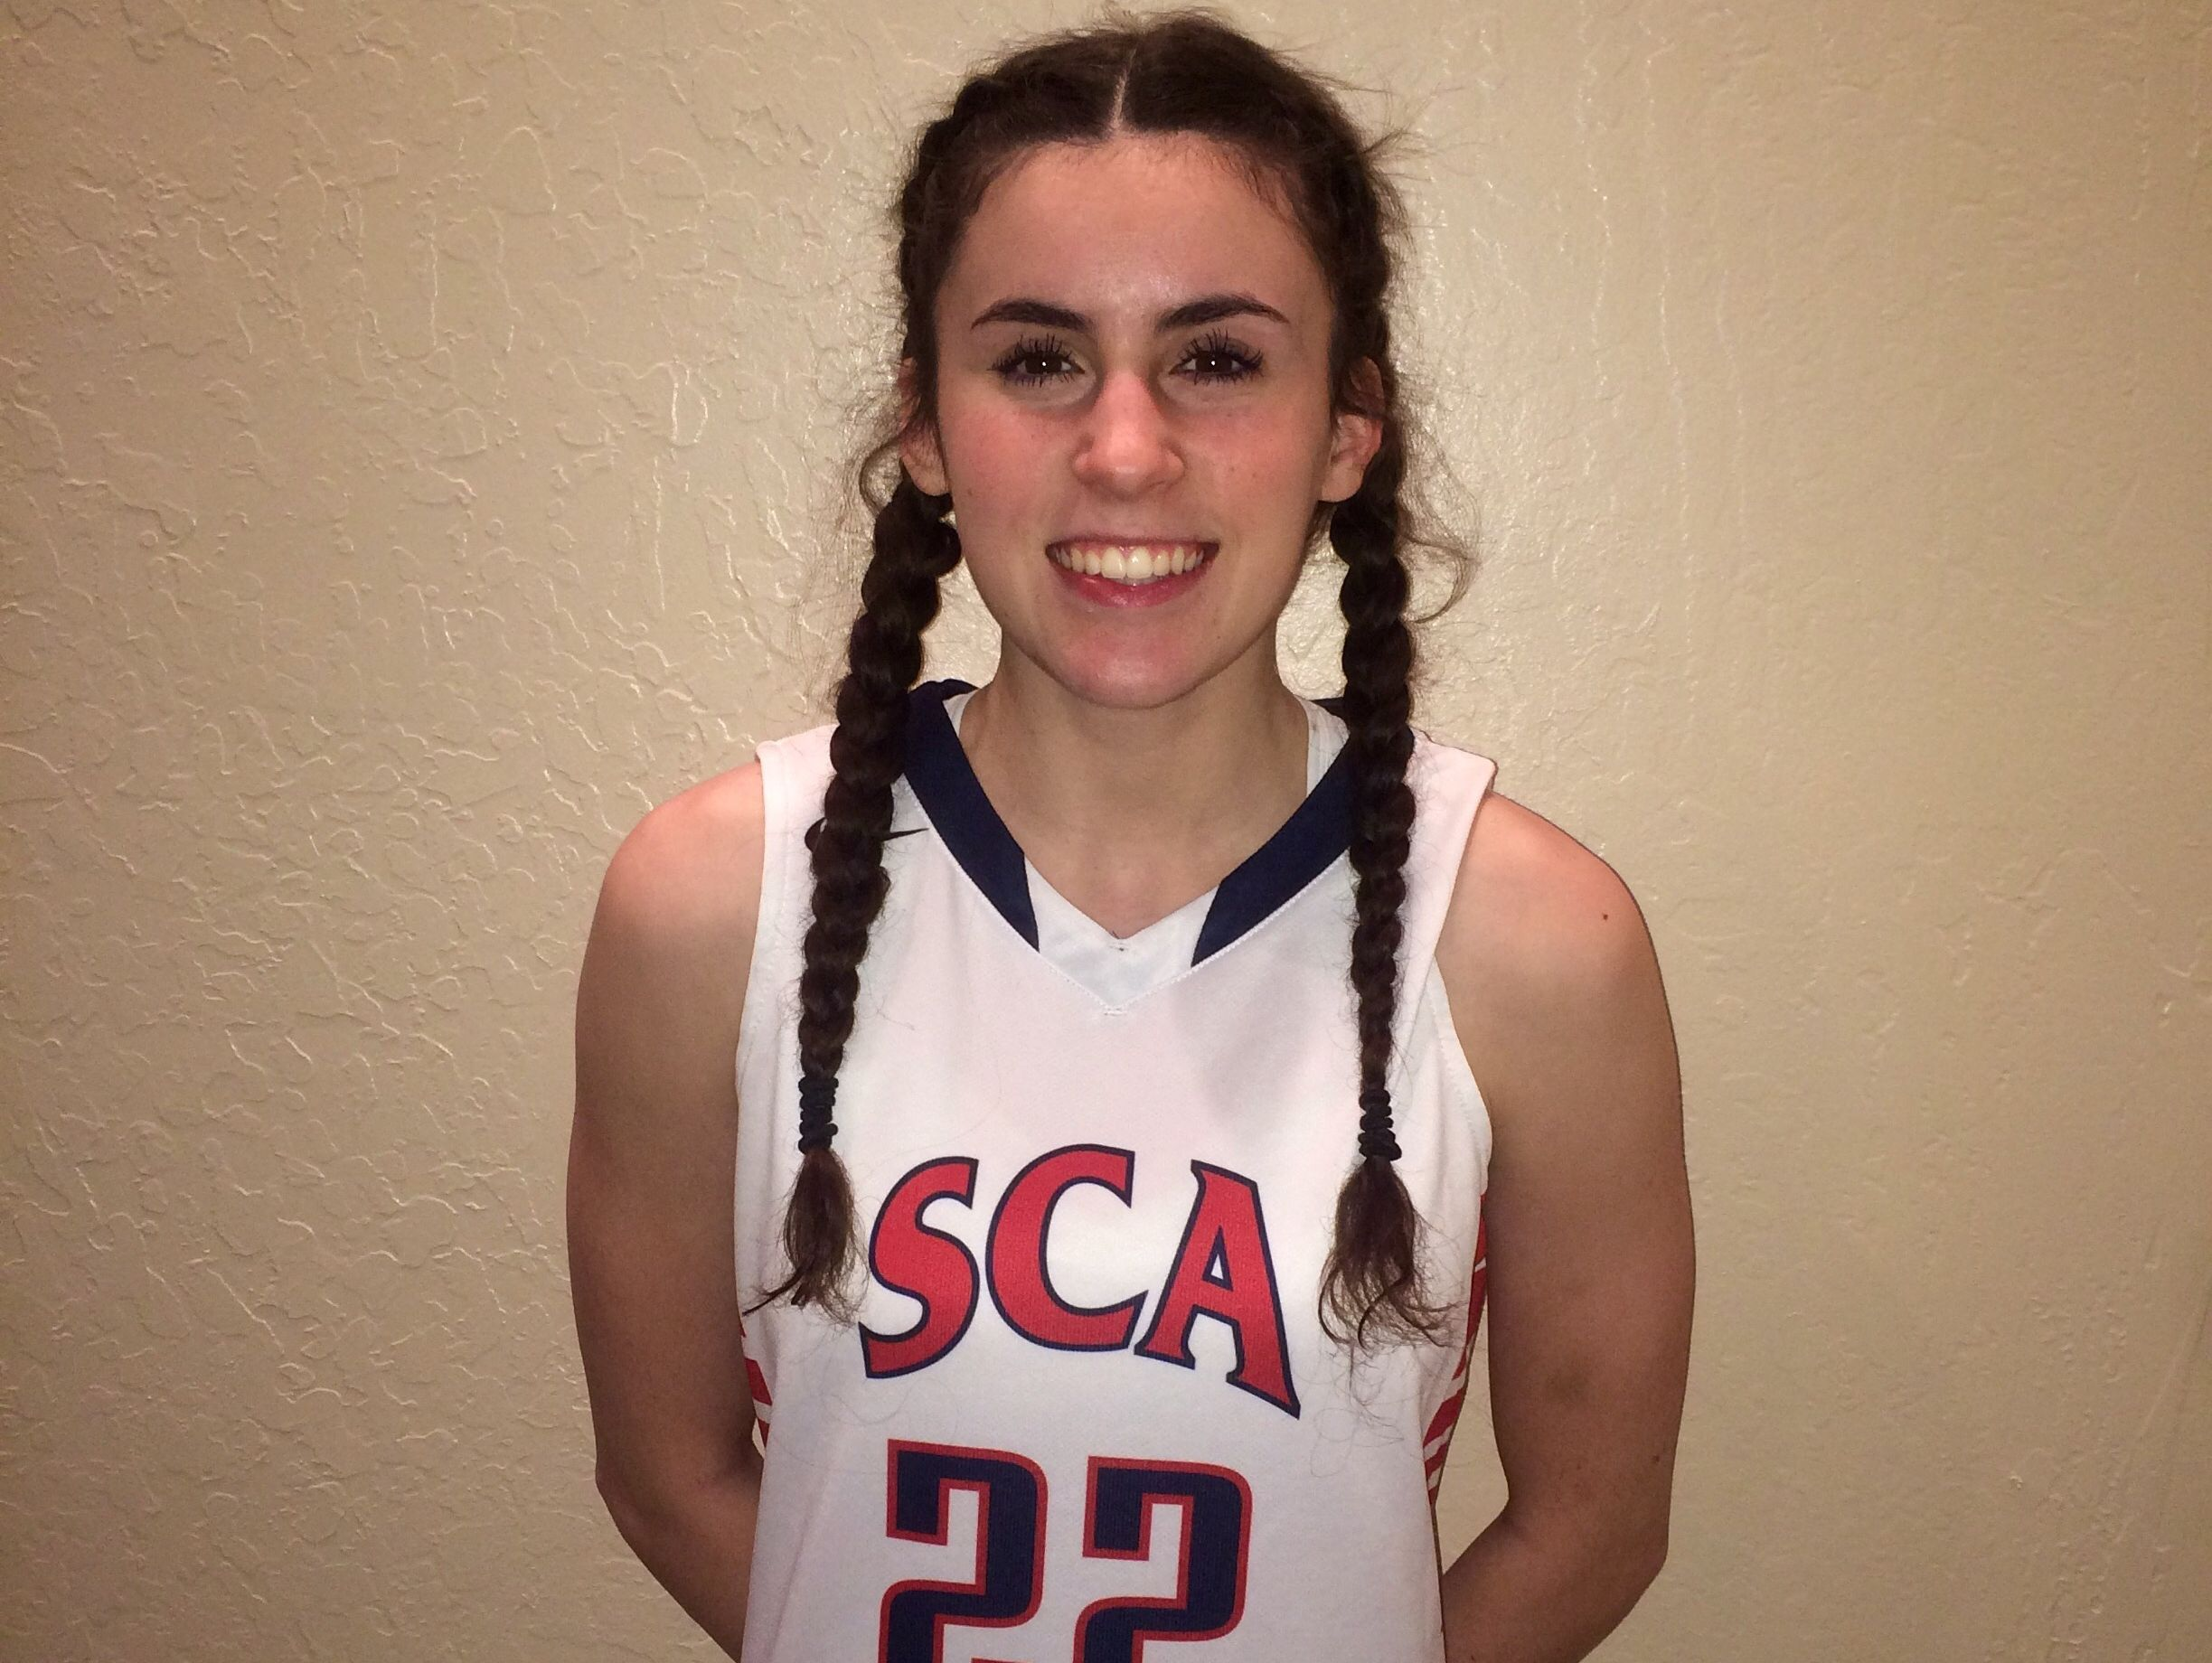 Jacqueline Iafrate, from Scottsdale Christian Academy, is the Arizona Sports Awards High Achiever of the Week for Feb. 18-25.